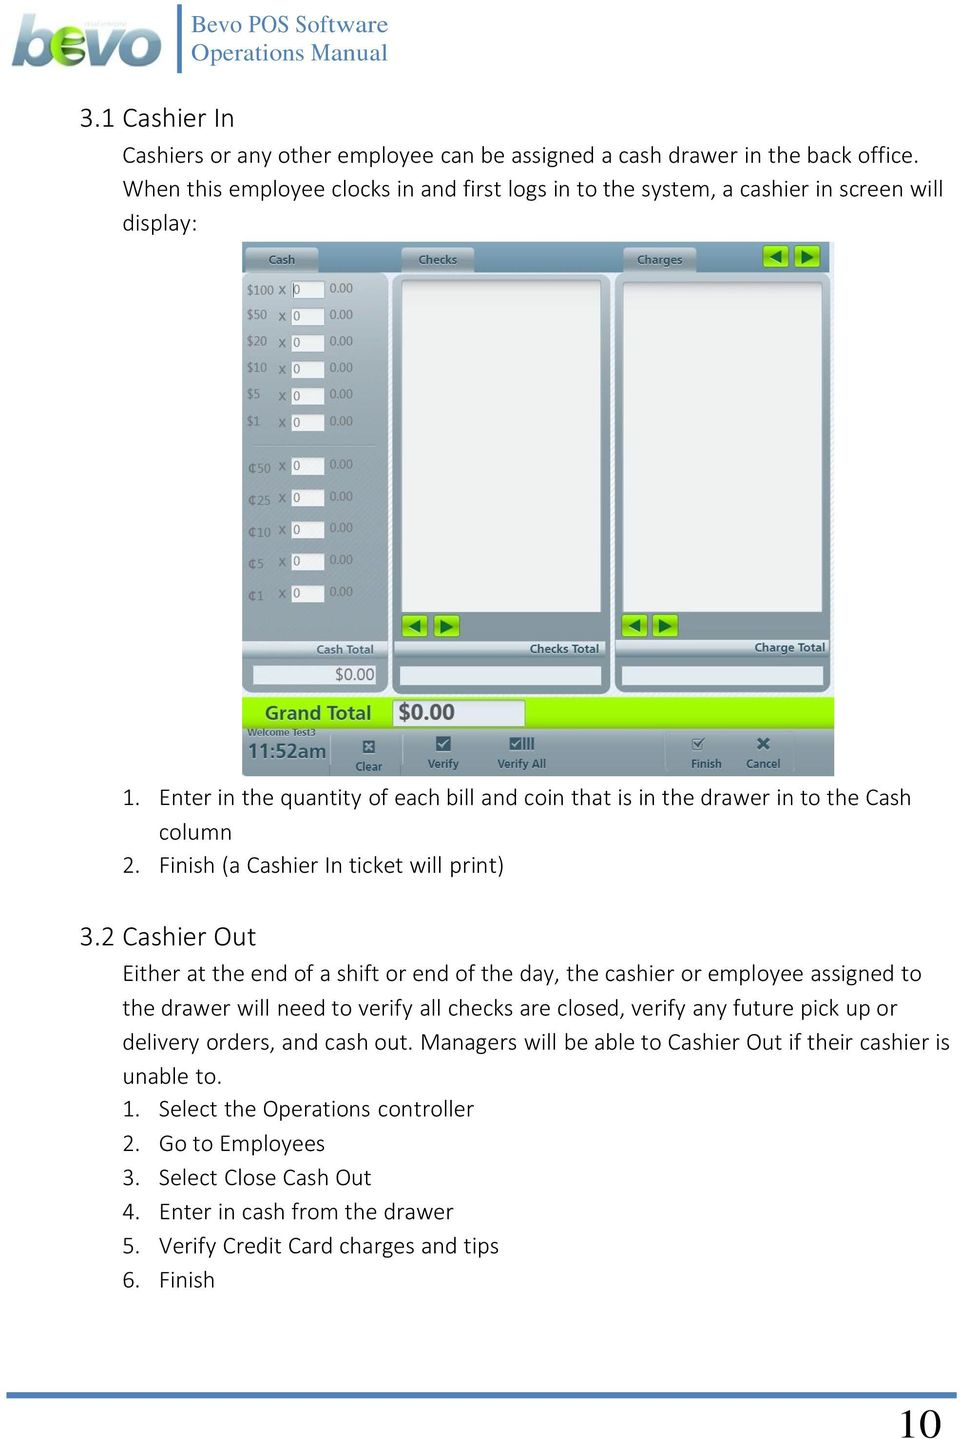 bevo pos software operations manual lee ann ln naples fl pdf rh docplayer net POS Systems for Small Business POS System